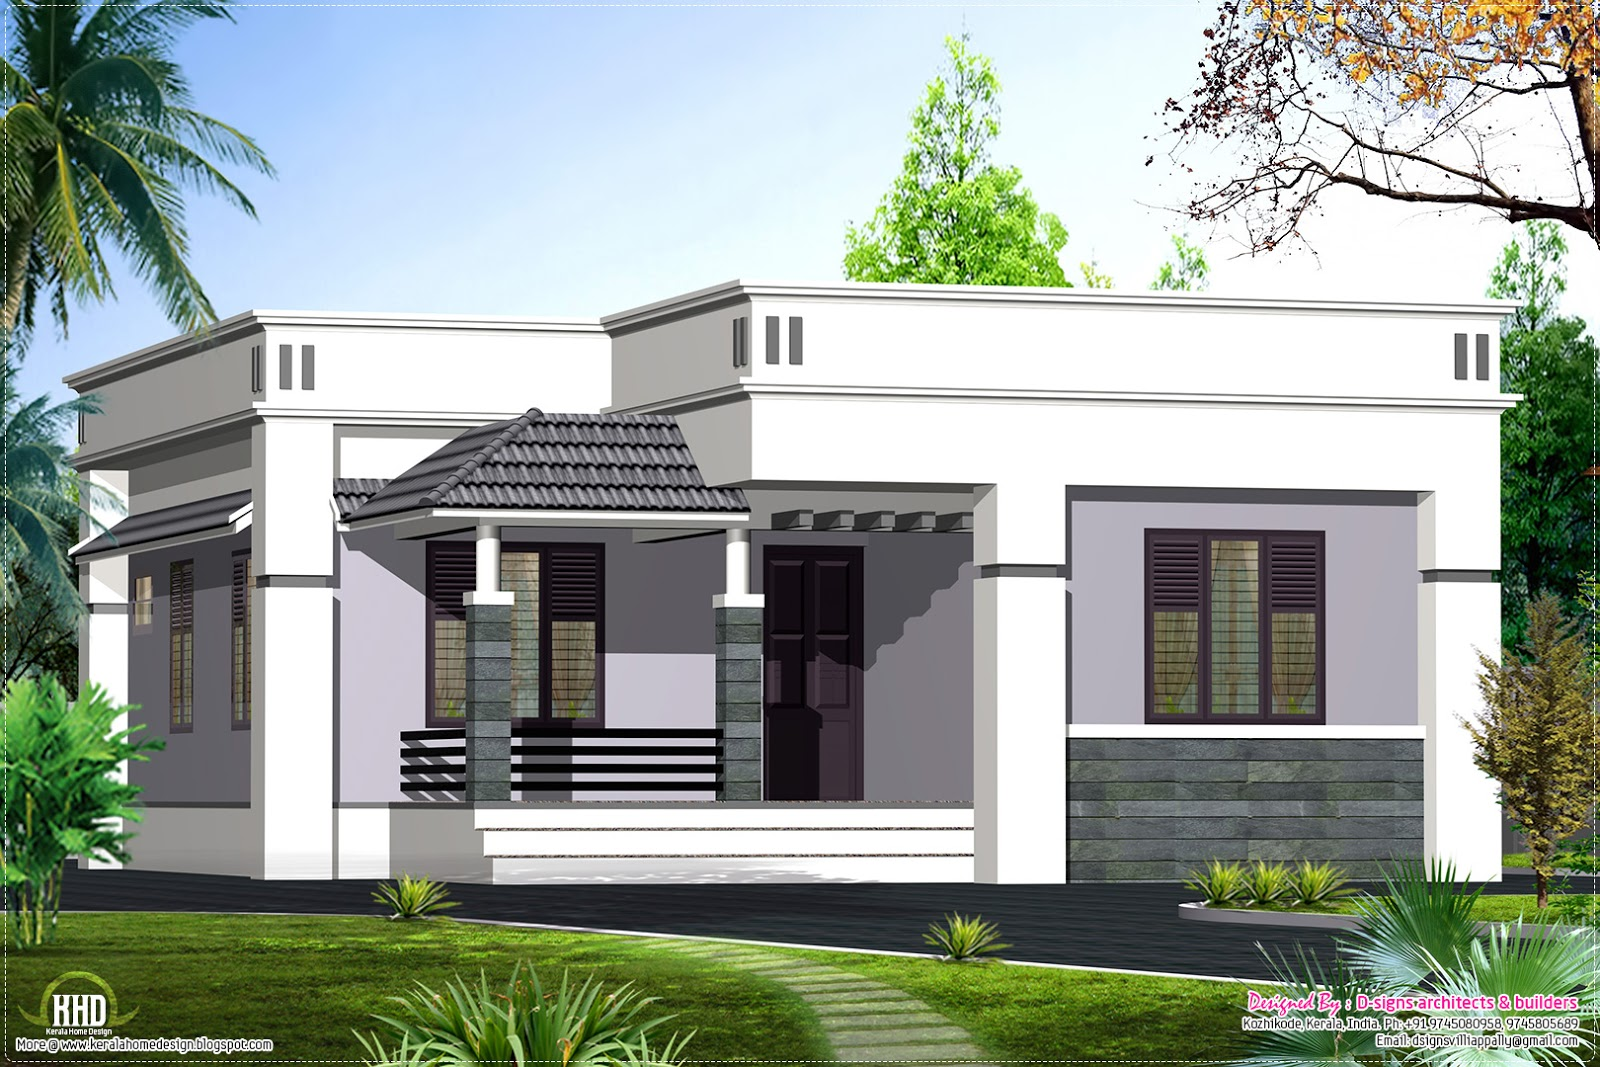 single floor house%2B%25282%2529 - 44+ Simple Single Floor Small House Parapet Design Images